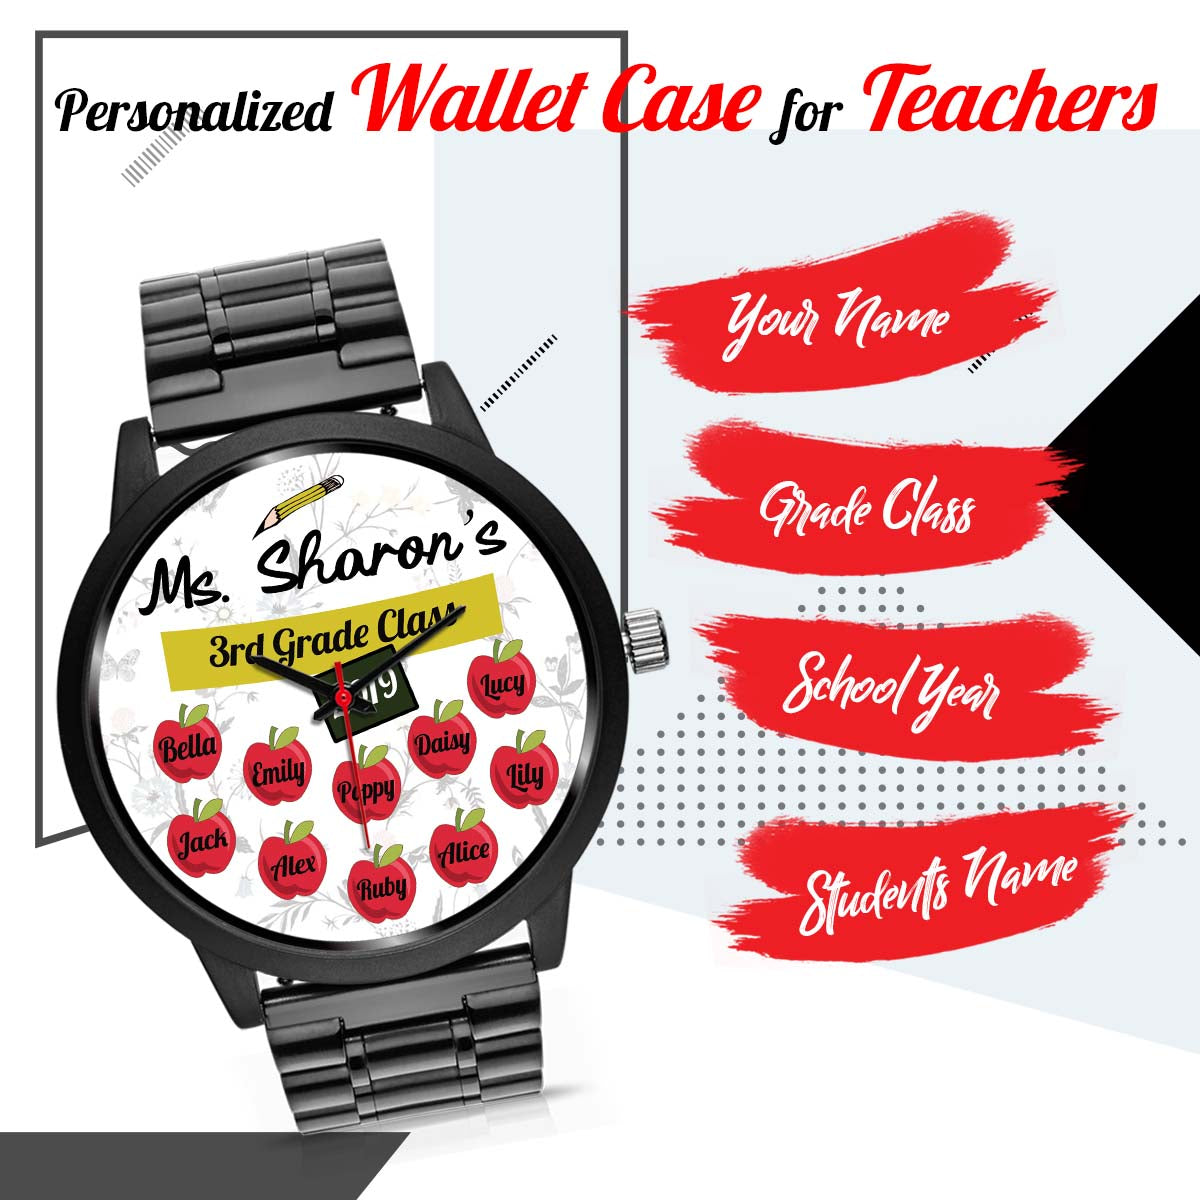 PERSONALIZED watch - create your own watch for teachers